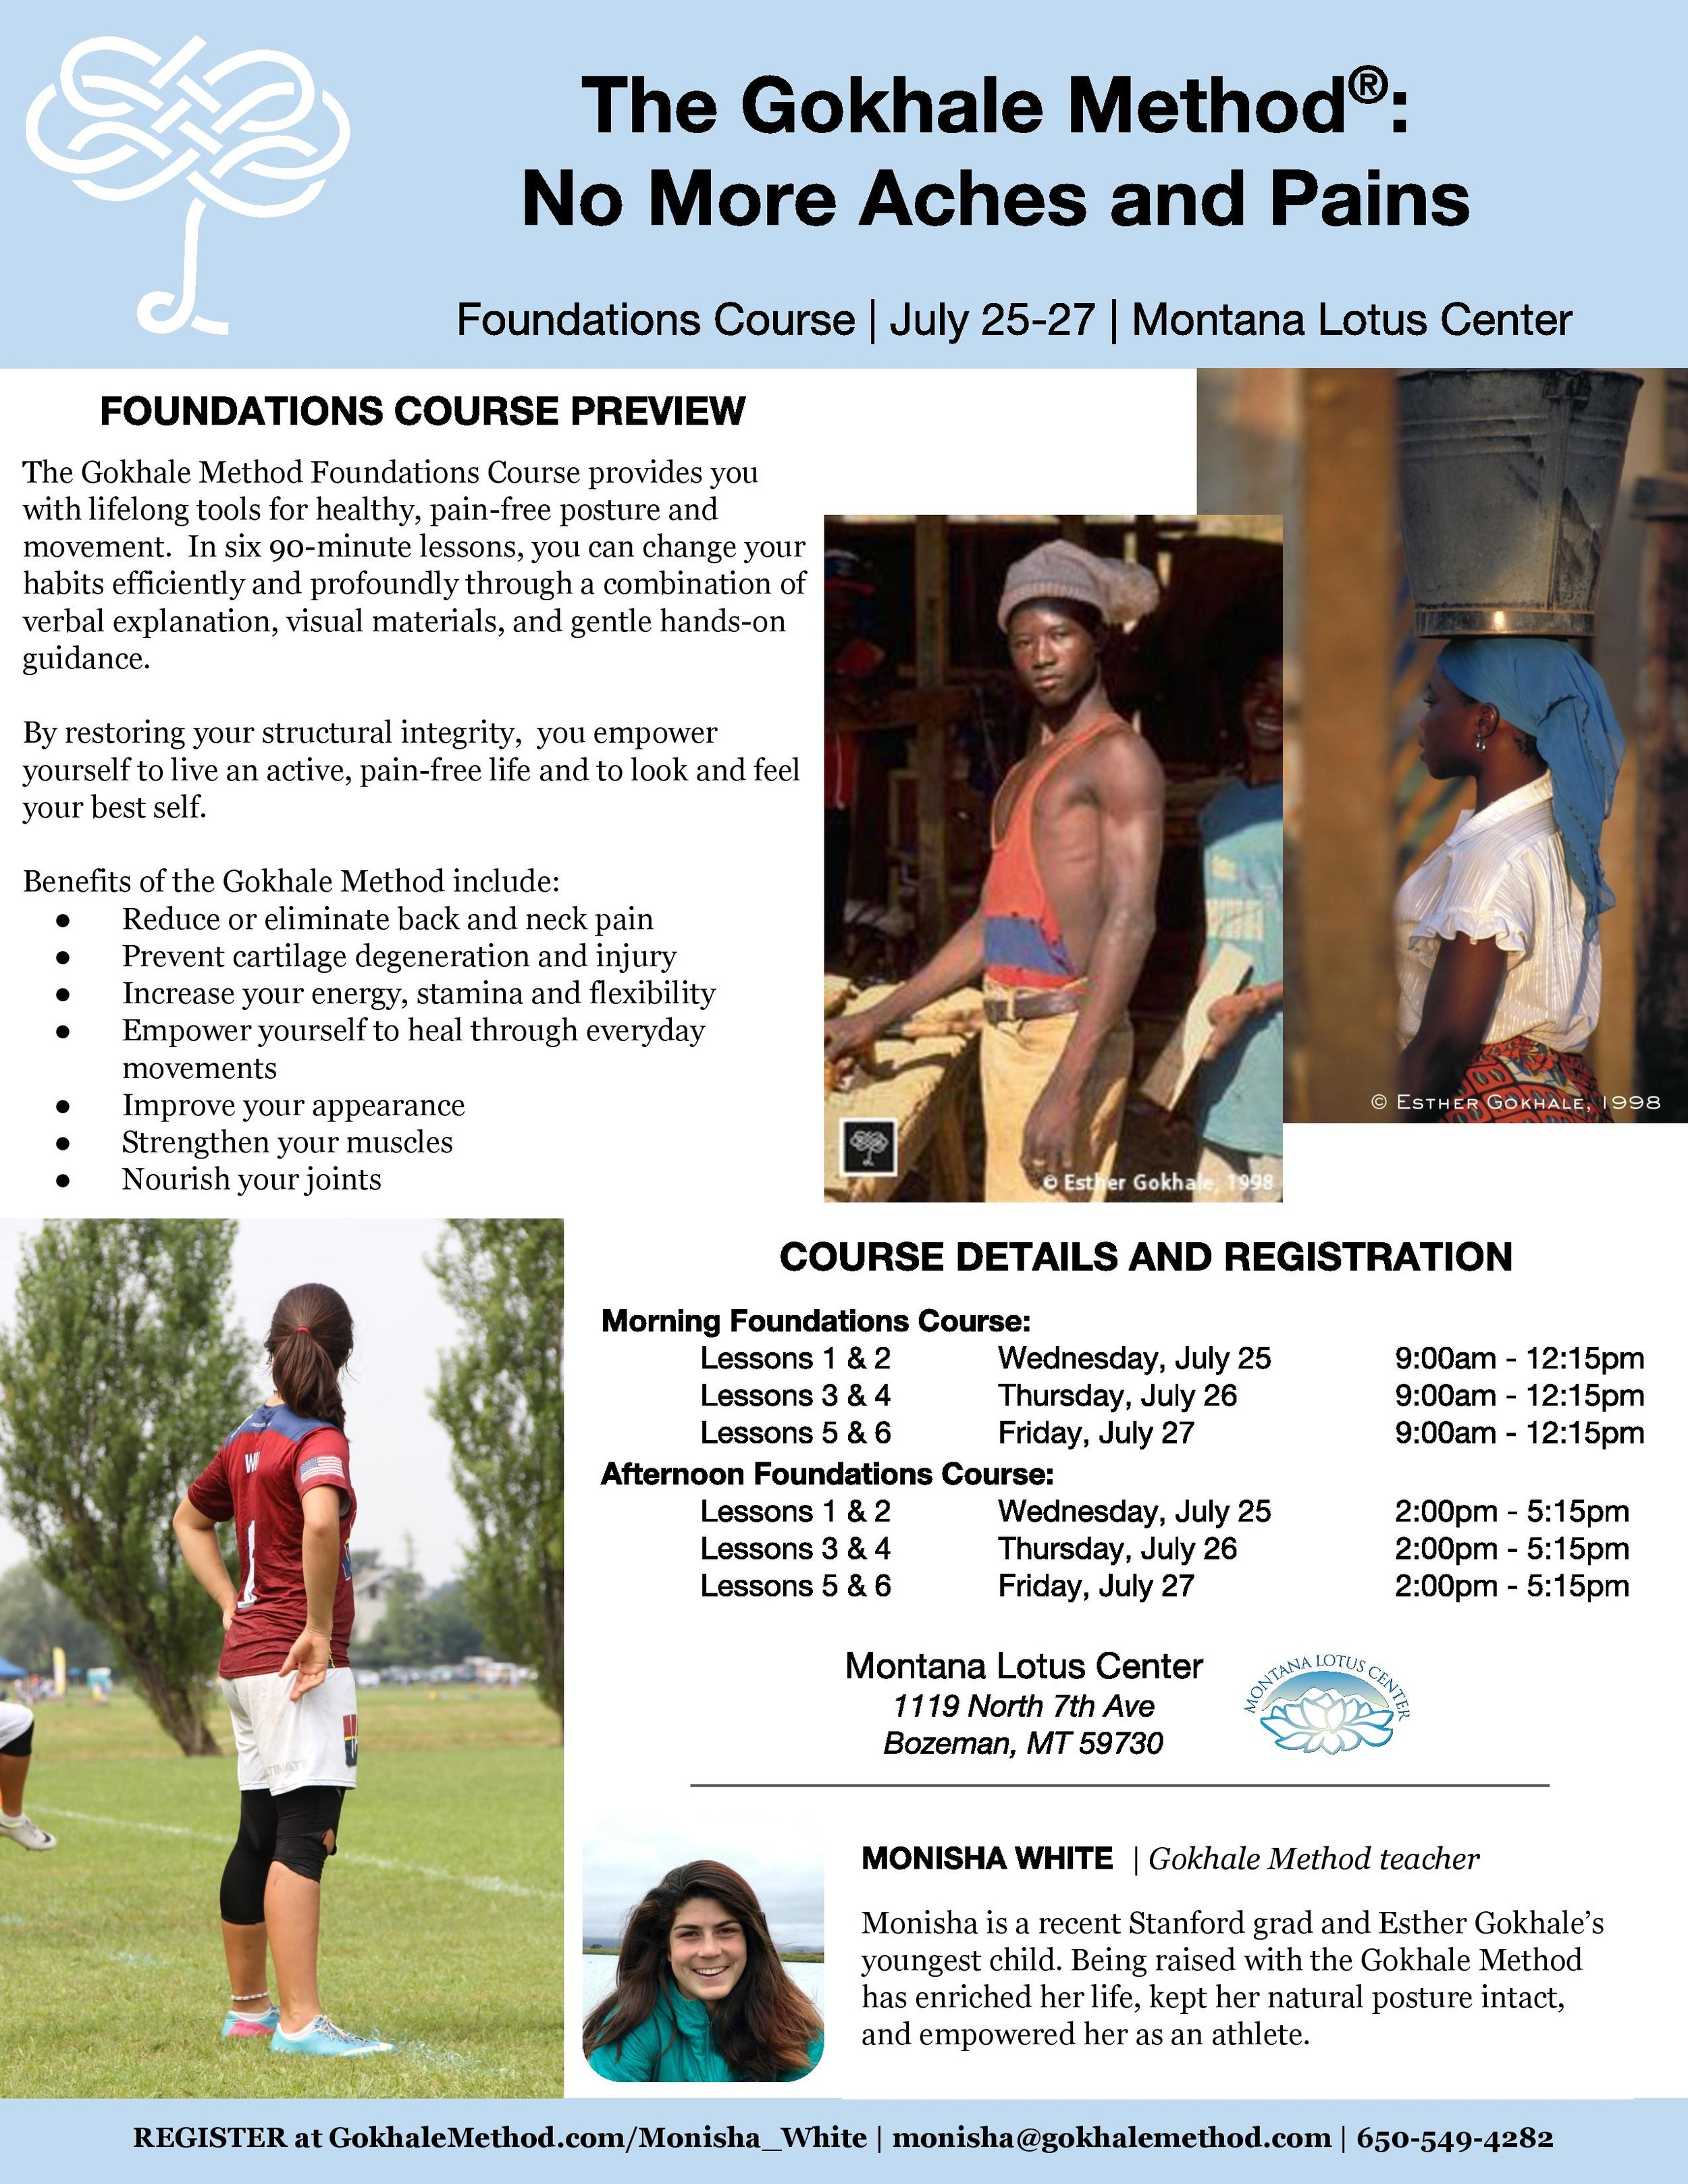 Gokhale Method Foundations Courses at Montana Lotus Center in Bozeman-page-001.jpg